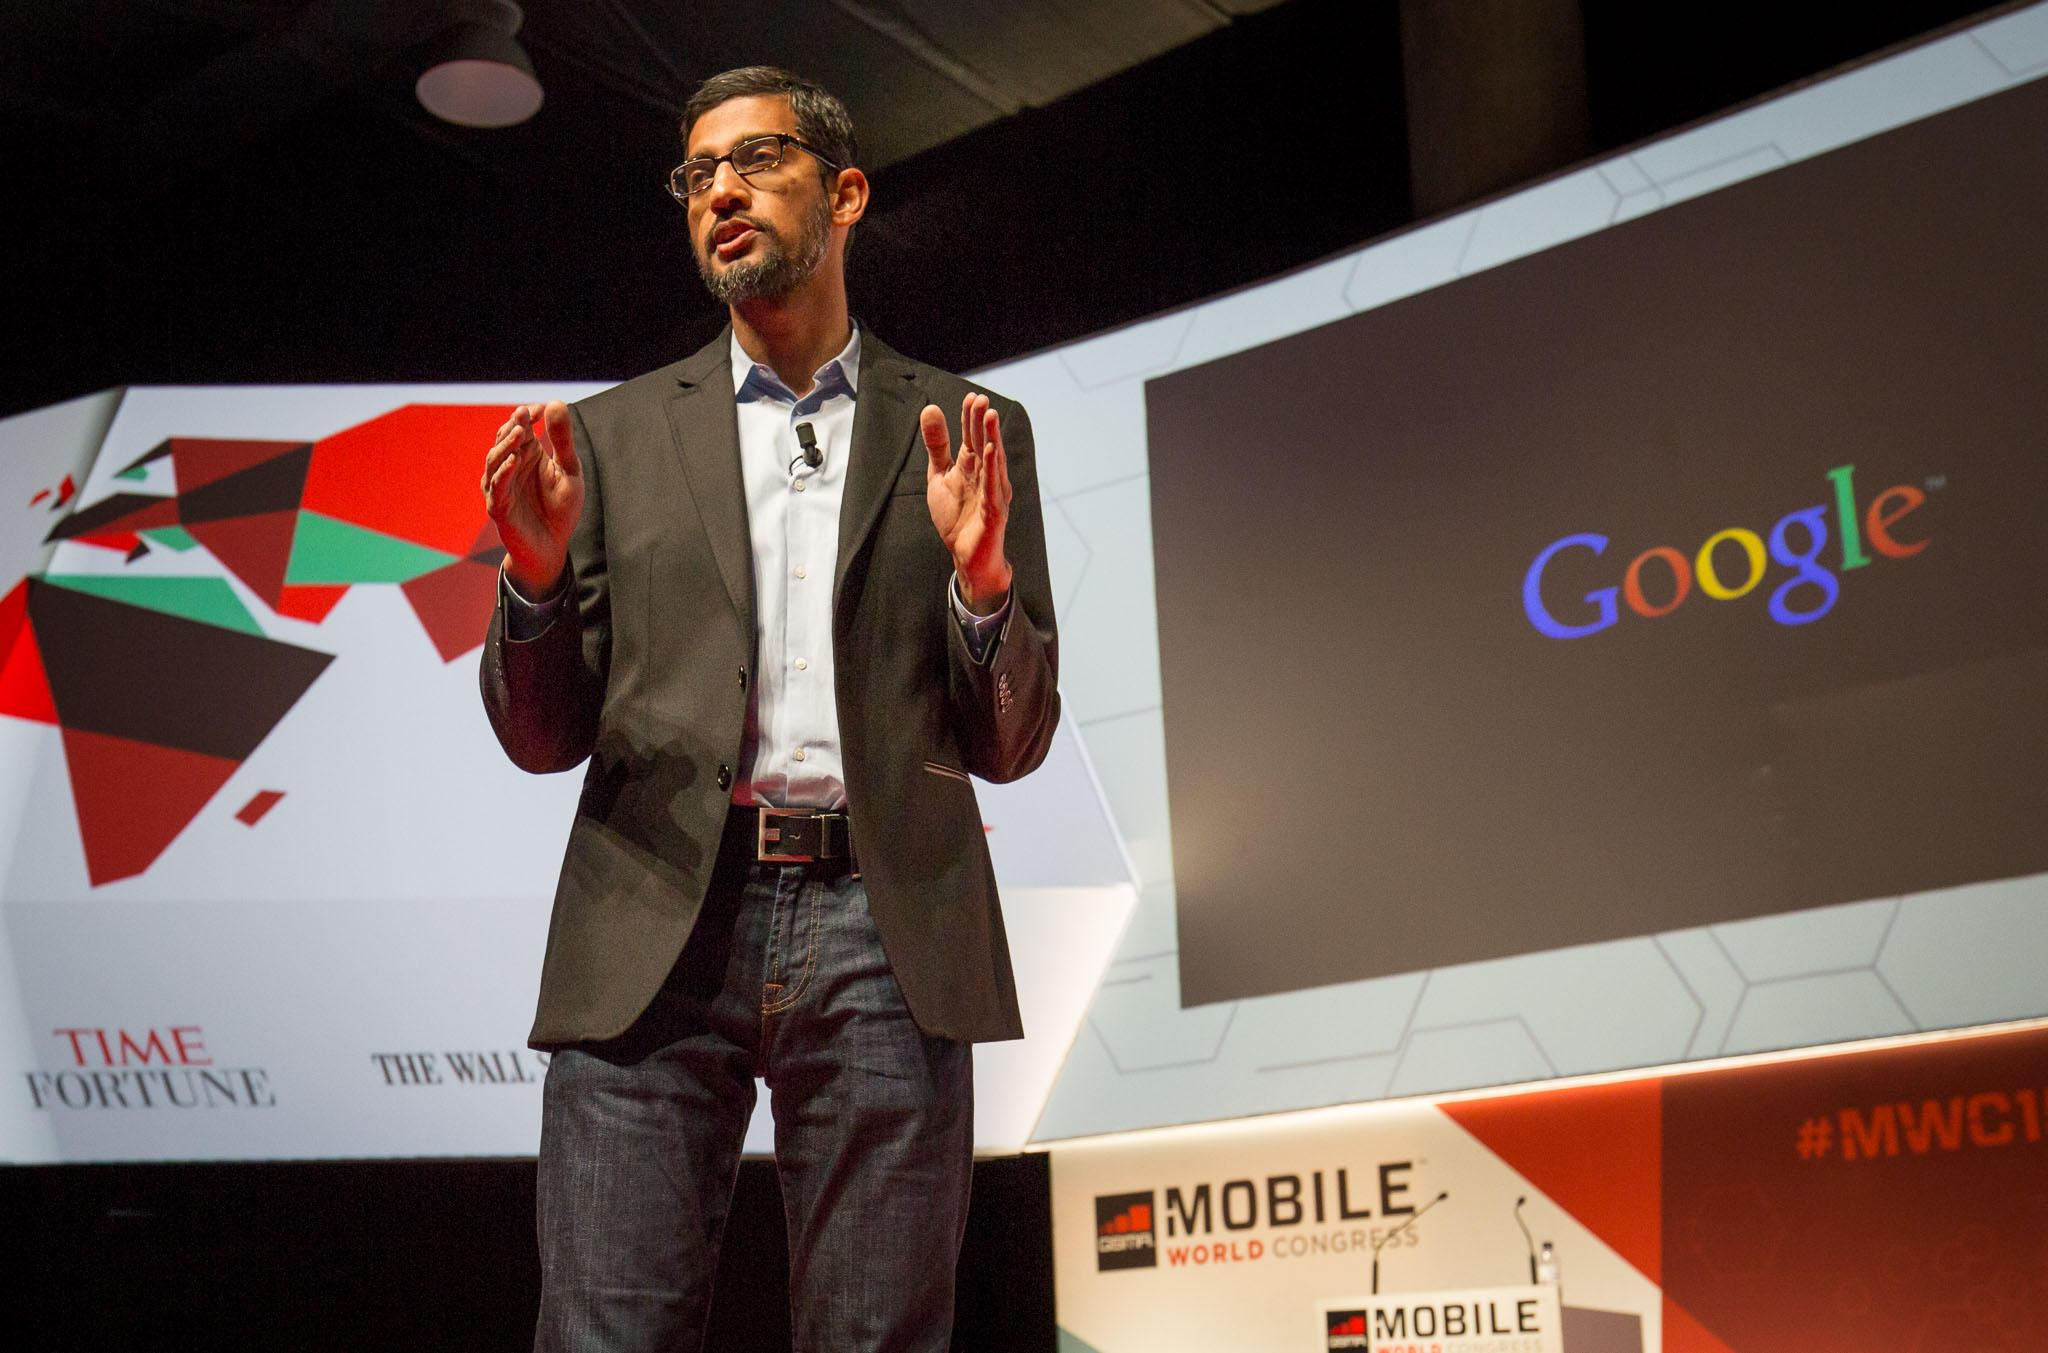 Google confirms wireless efforts, plans bigger reveal 'in coming months'